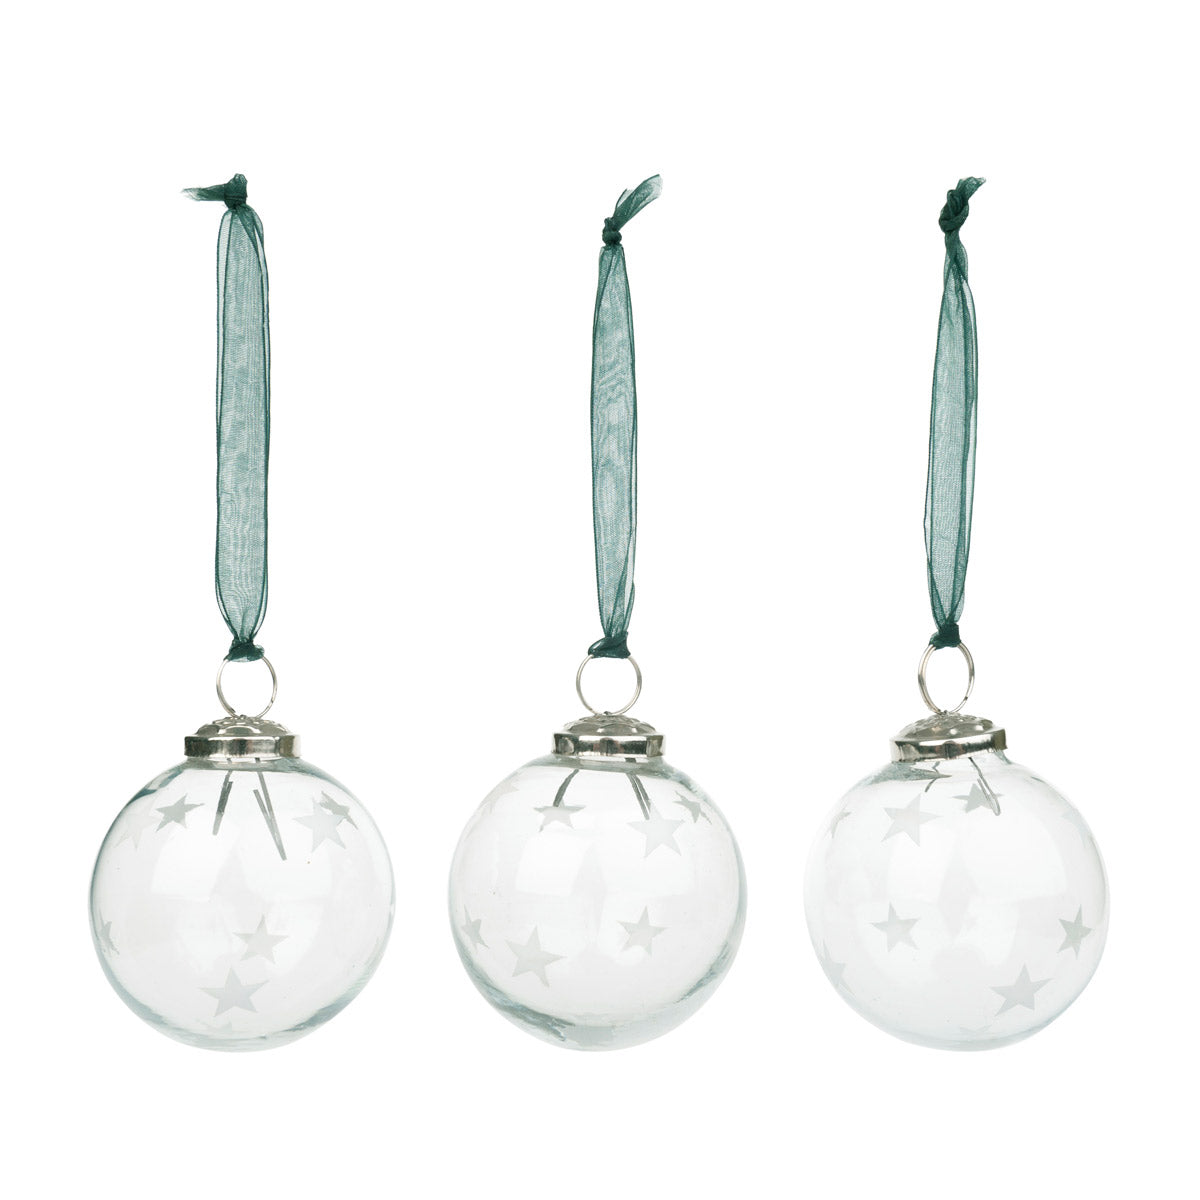 Frosted Star Bauble Decoration - Set of 3